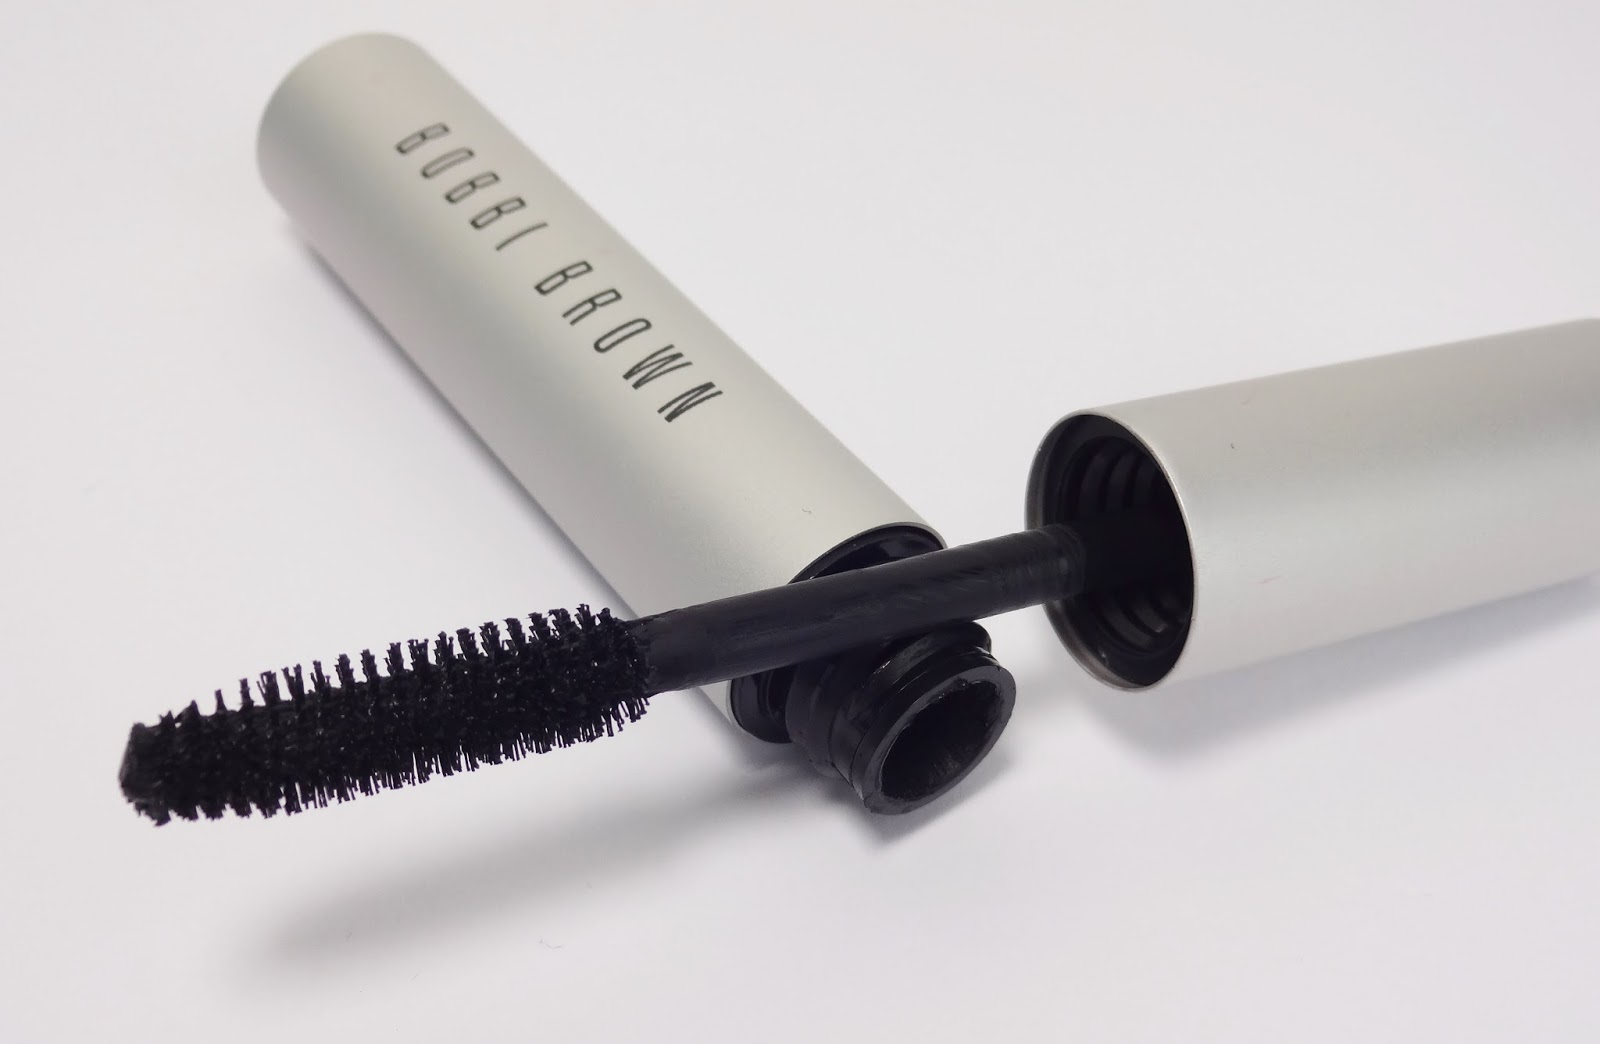 Bobbi Brown - Smokey Eye Mascara Pretty Clover Beautyblog Review